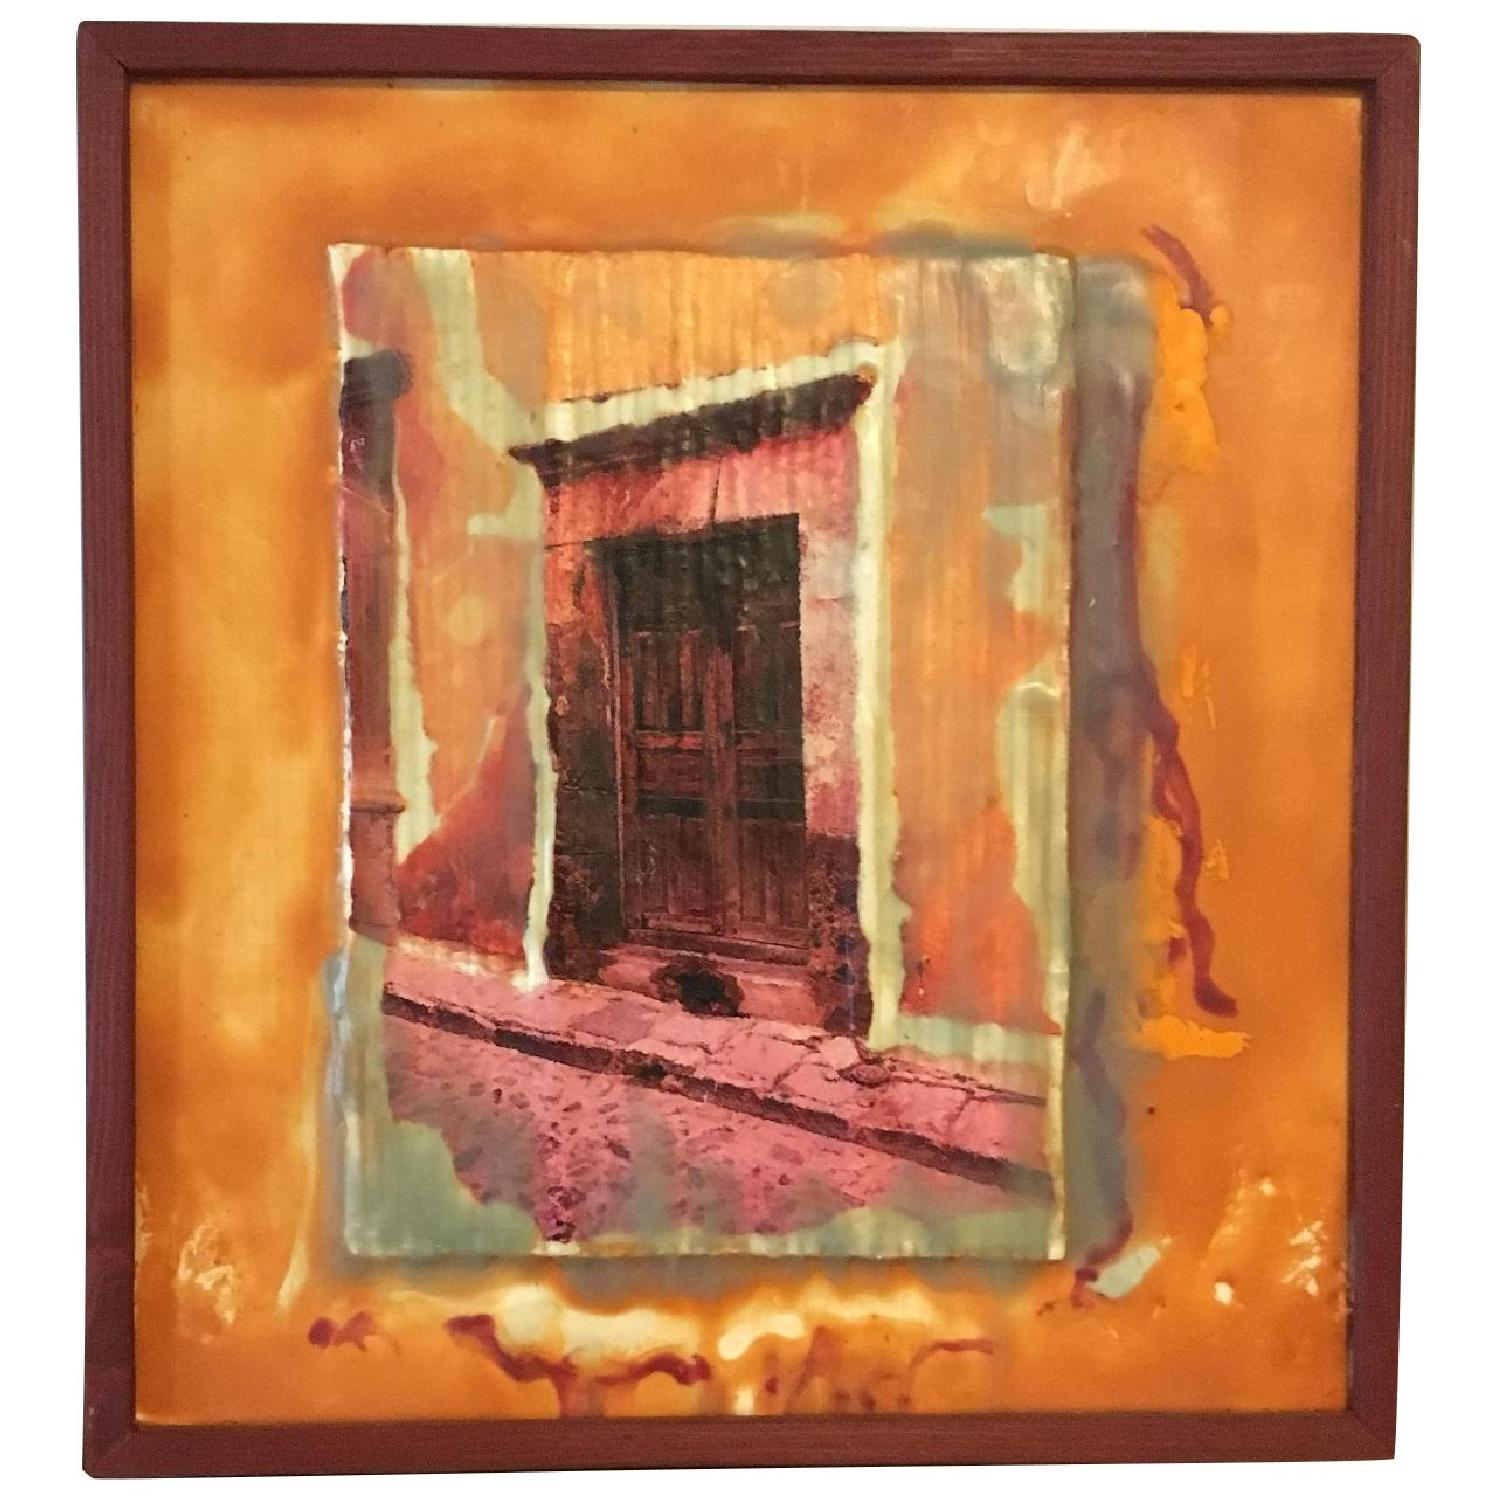 Calle Morada Collage Encaustic Beeswax